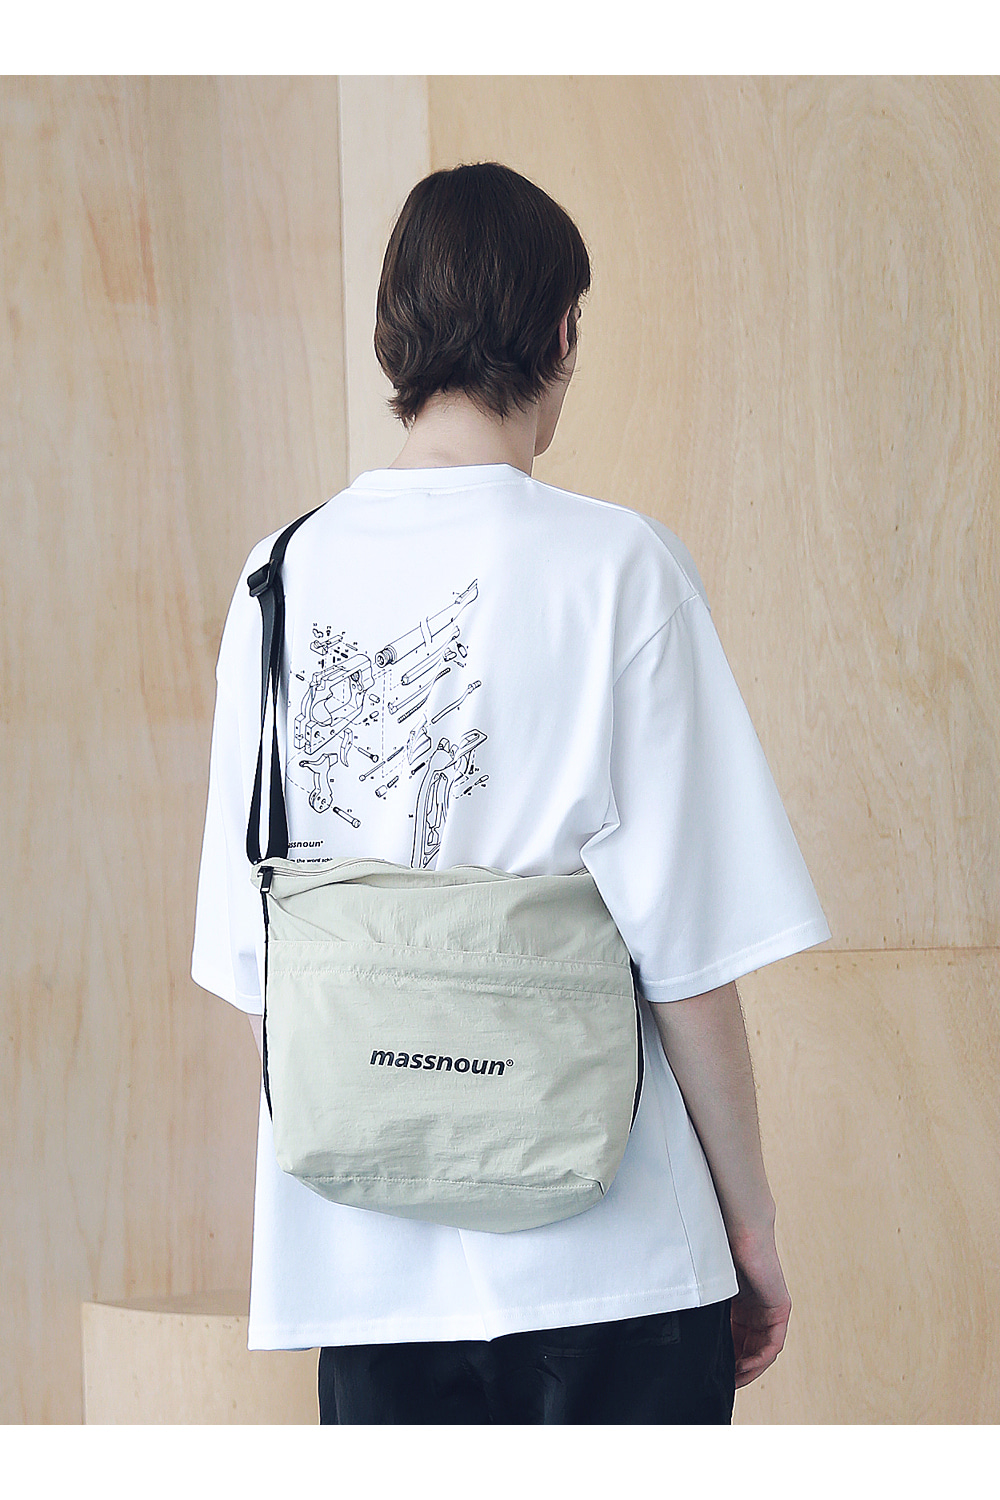 매스노운(MASSNOUN) SL LOGO 2WAY COMPACT BAG MSNAB003-BG